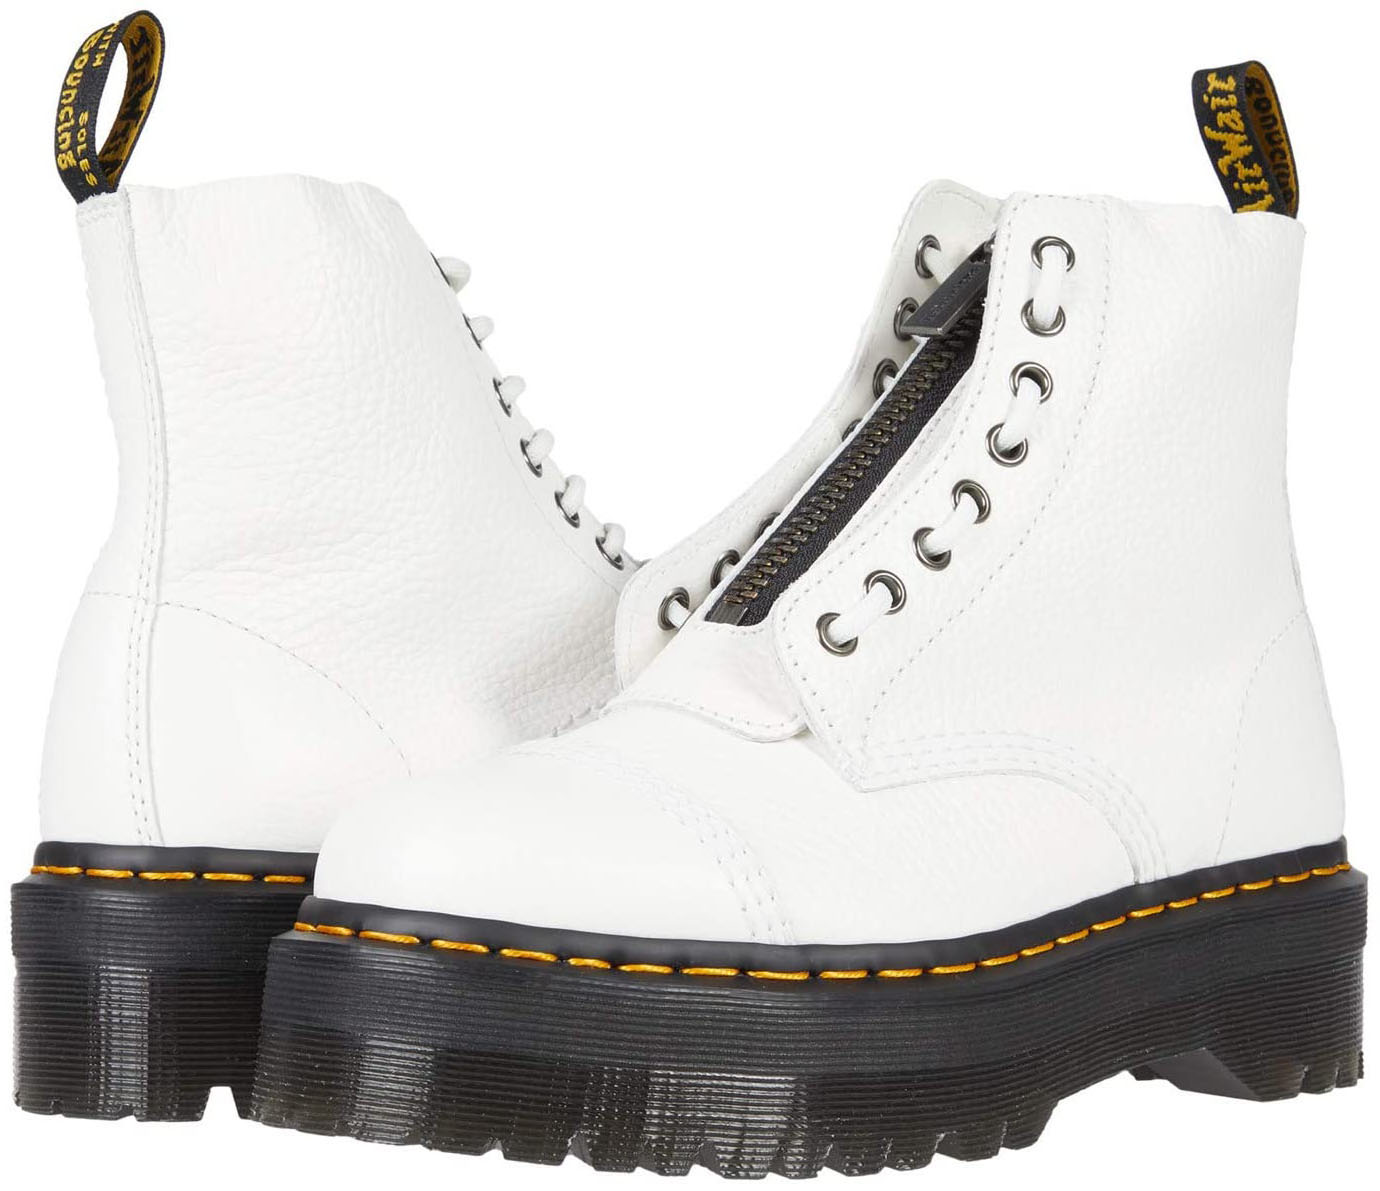 Update your look with the modern military-style Dr. Martens Sinclair boots